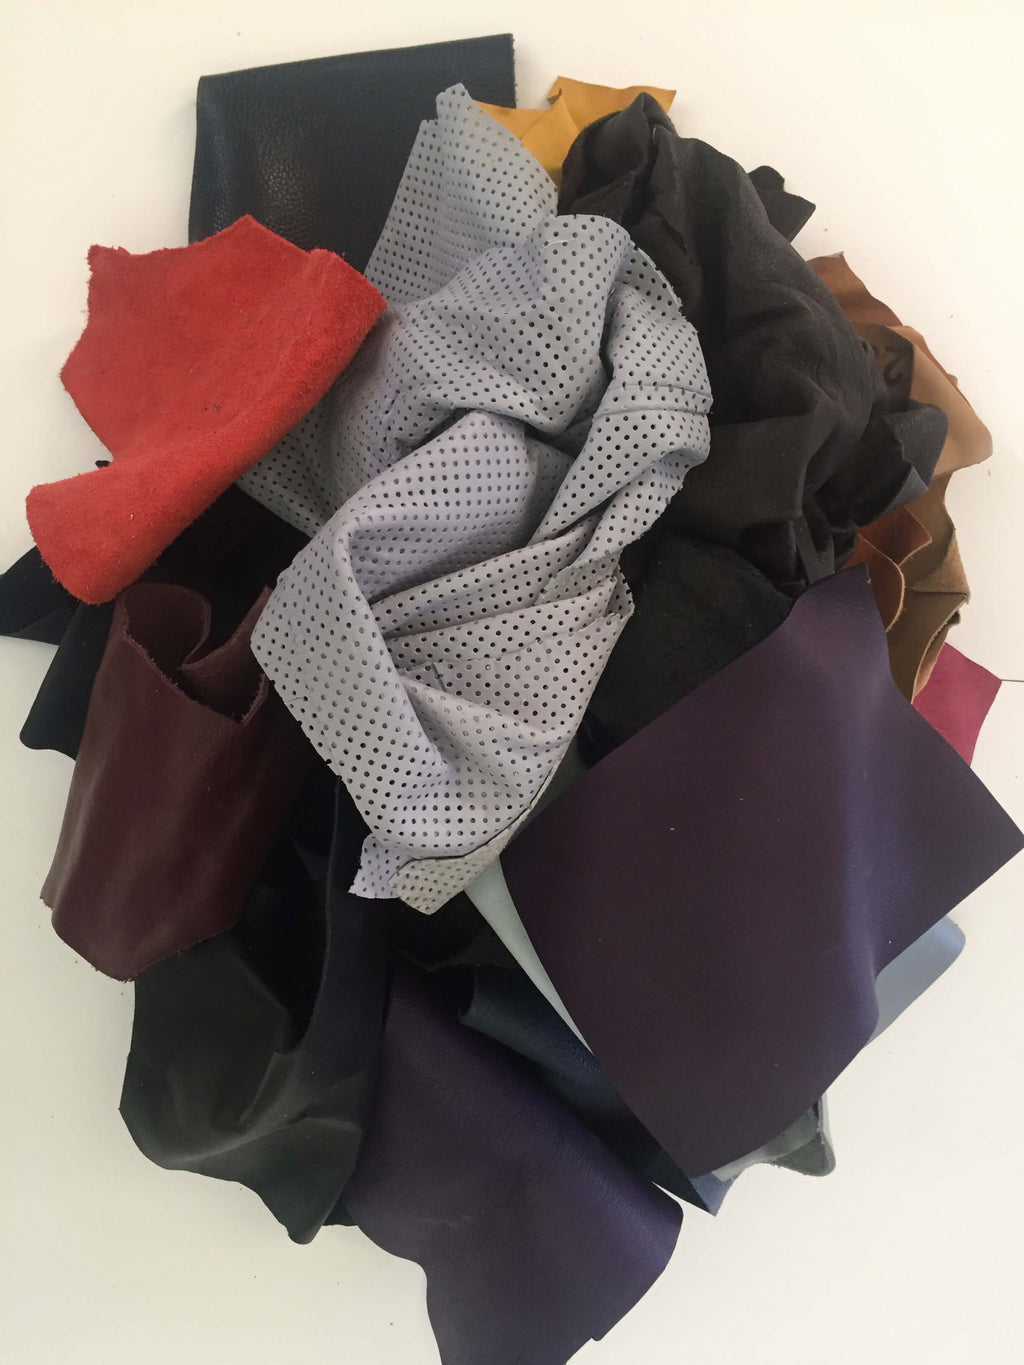 SALE Genuine Leather Scraps, Remnants Pieces Cowhide and Lambskin, Craft Projects, 1lb Mix Bag, Varios Colors,  DIY Material, Sewing Supply